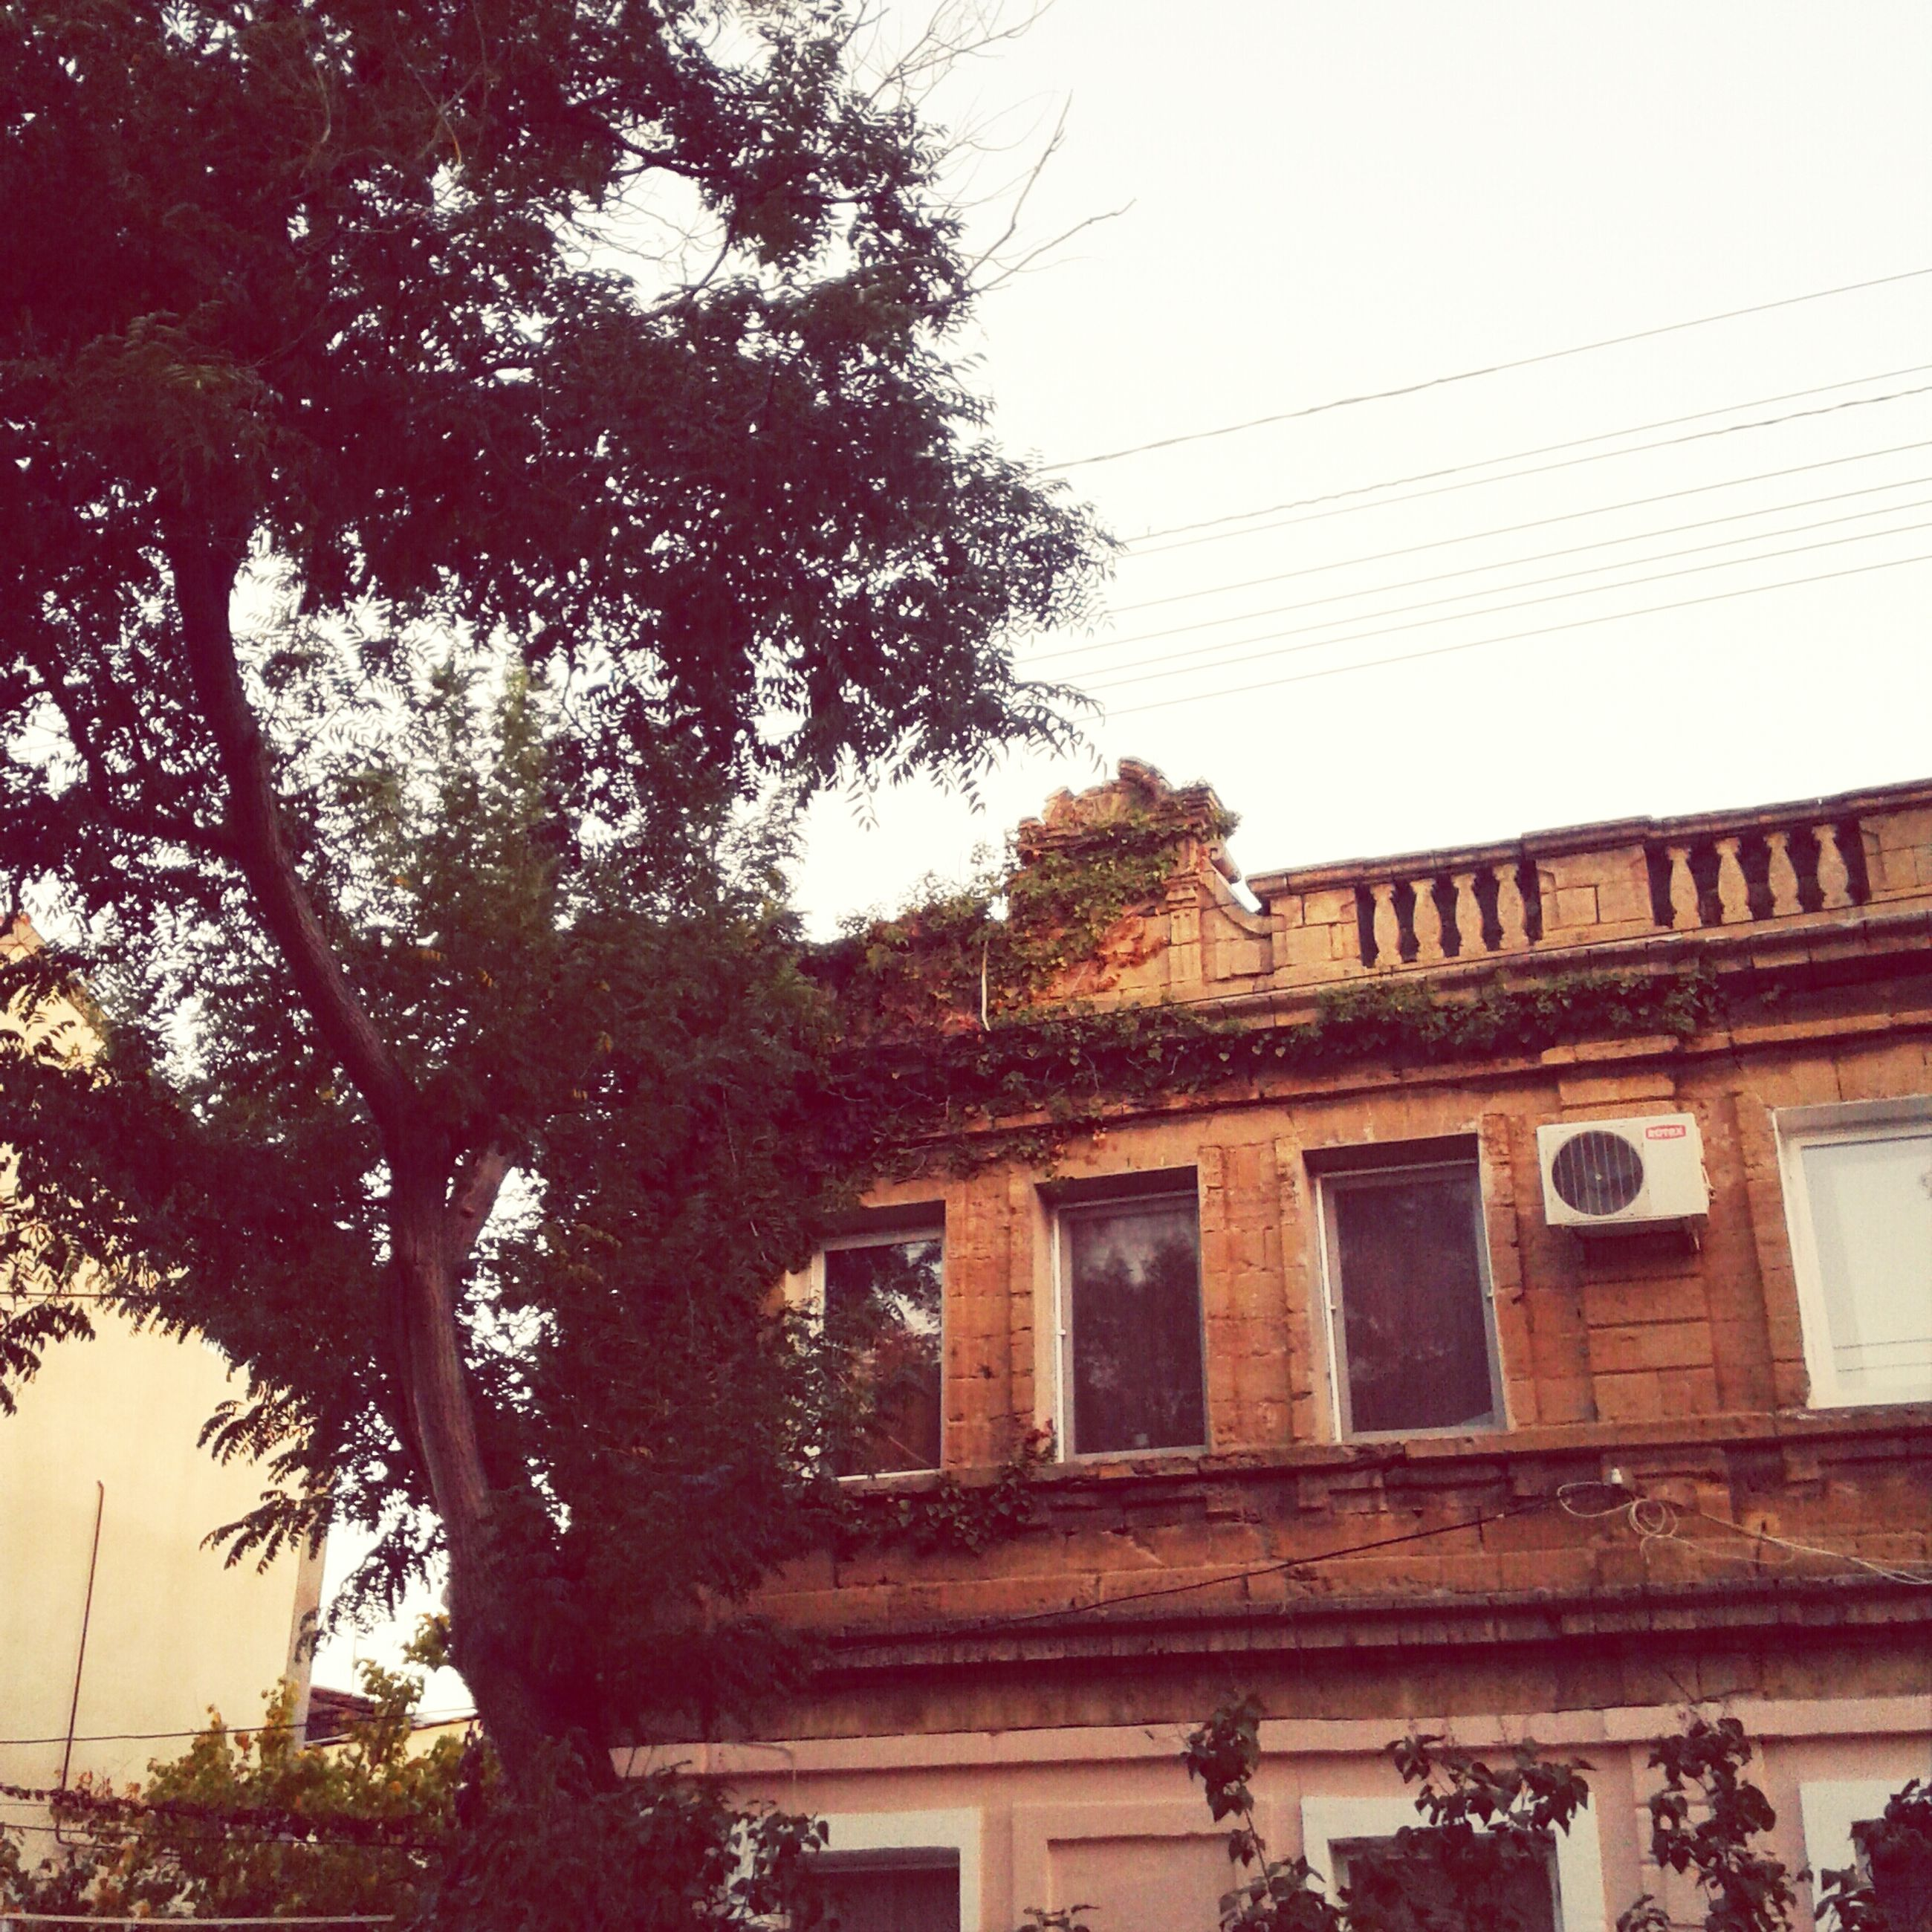 architecture, built structure, building exterior, low angle view, tree, house, residential building, window, residential structure, sky, building, clear sky, old, outdoors, day, no people, branch, growth, exterior, roof